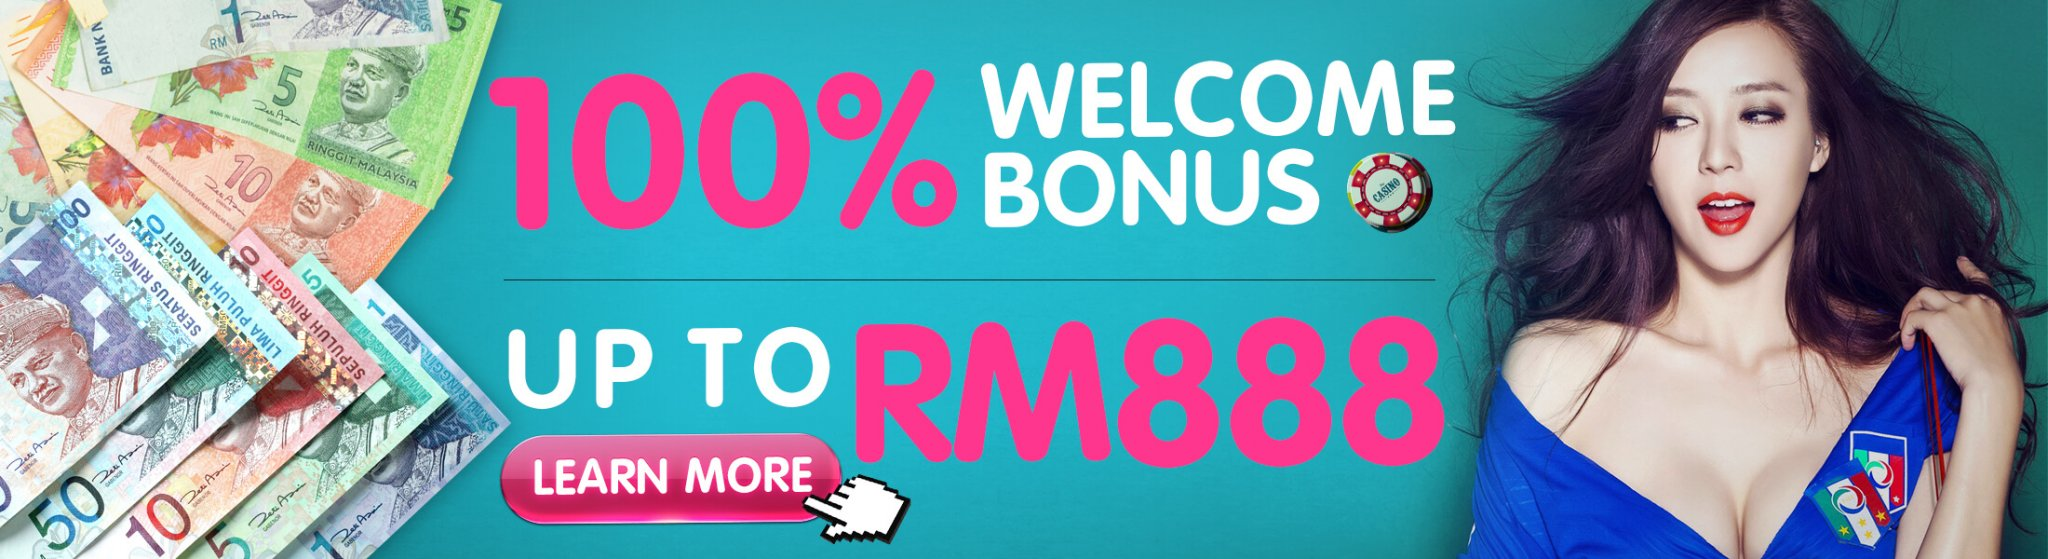 918Kiss(SCR888) New Member 100% Welcome Bonus Up to MYR888!